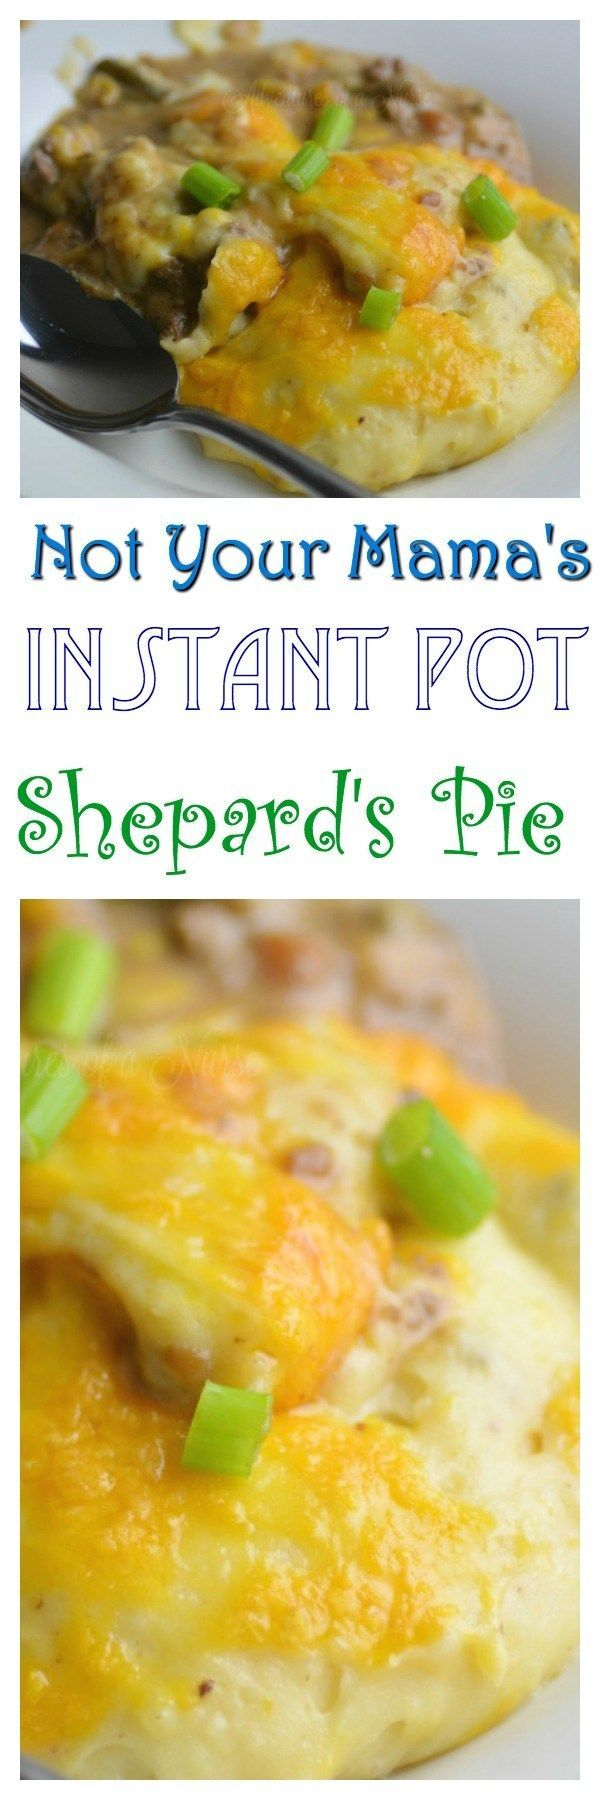 Not Your Mama's Instant Pot Shepard's Pie